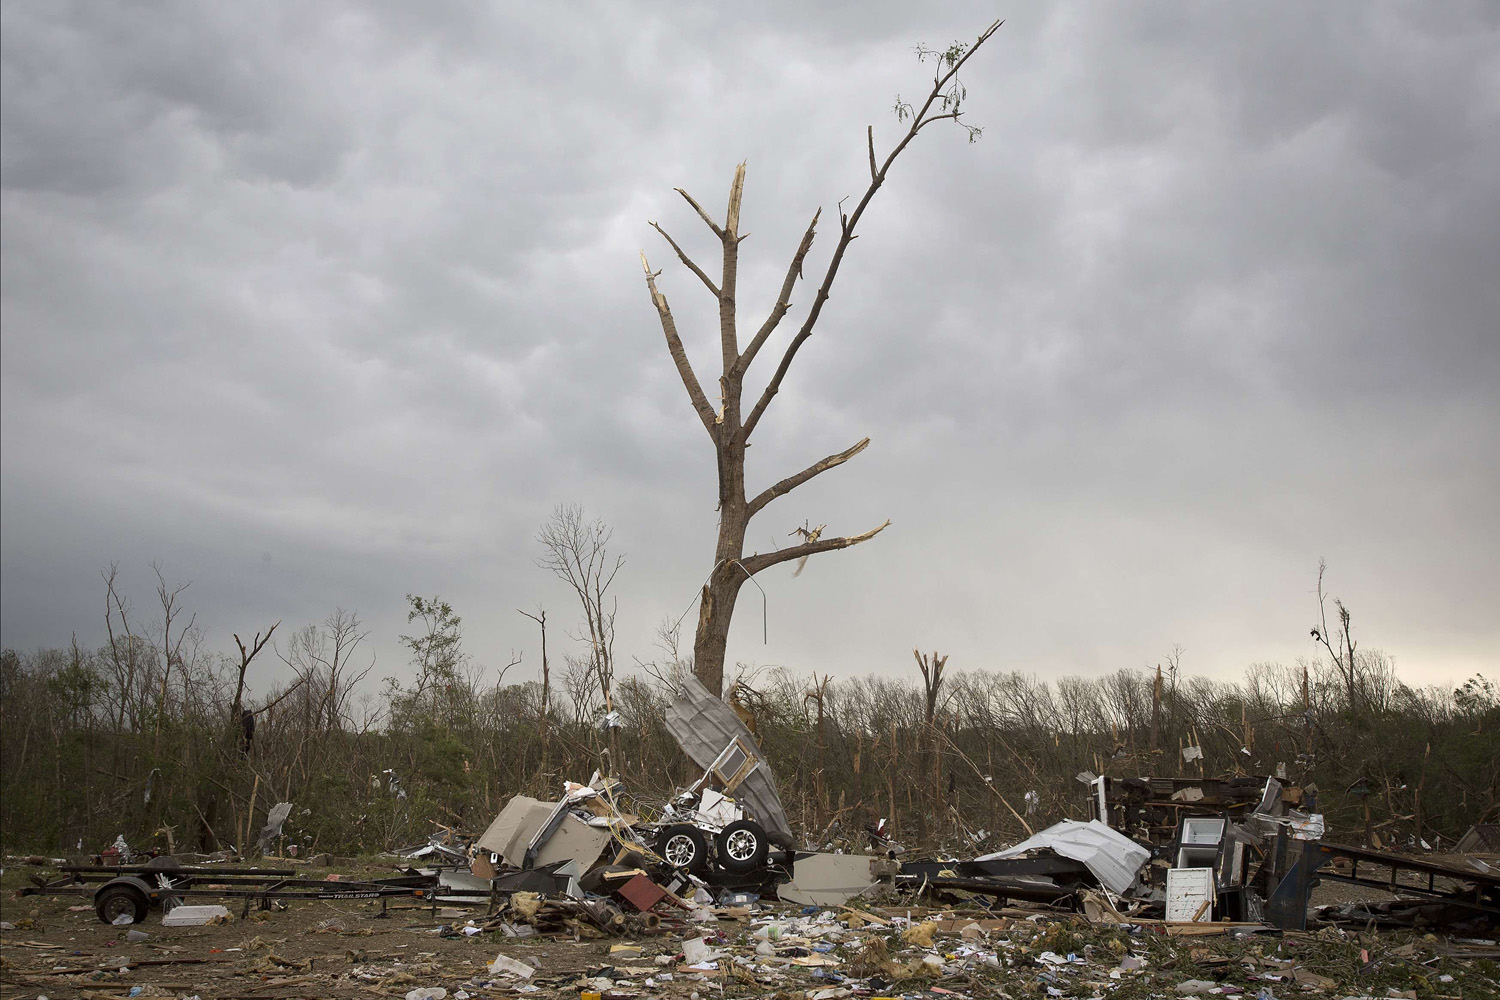 Apr. 29, 2014. Debris from Mayflower RV is pictured strewn around in Mayflower, Arkansas.  A storm system that killed more than 20 people continued its march across a large swath of the U.S. Southeast on Tuesday, packing baseball-sized hail, damaging winds and the threat of more tornados, meteorologists said.